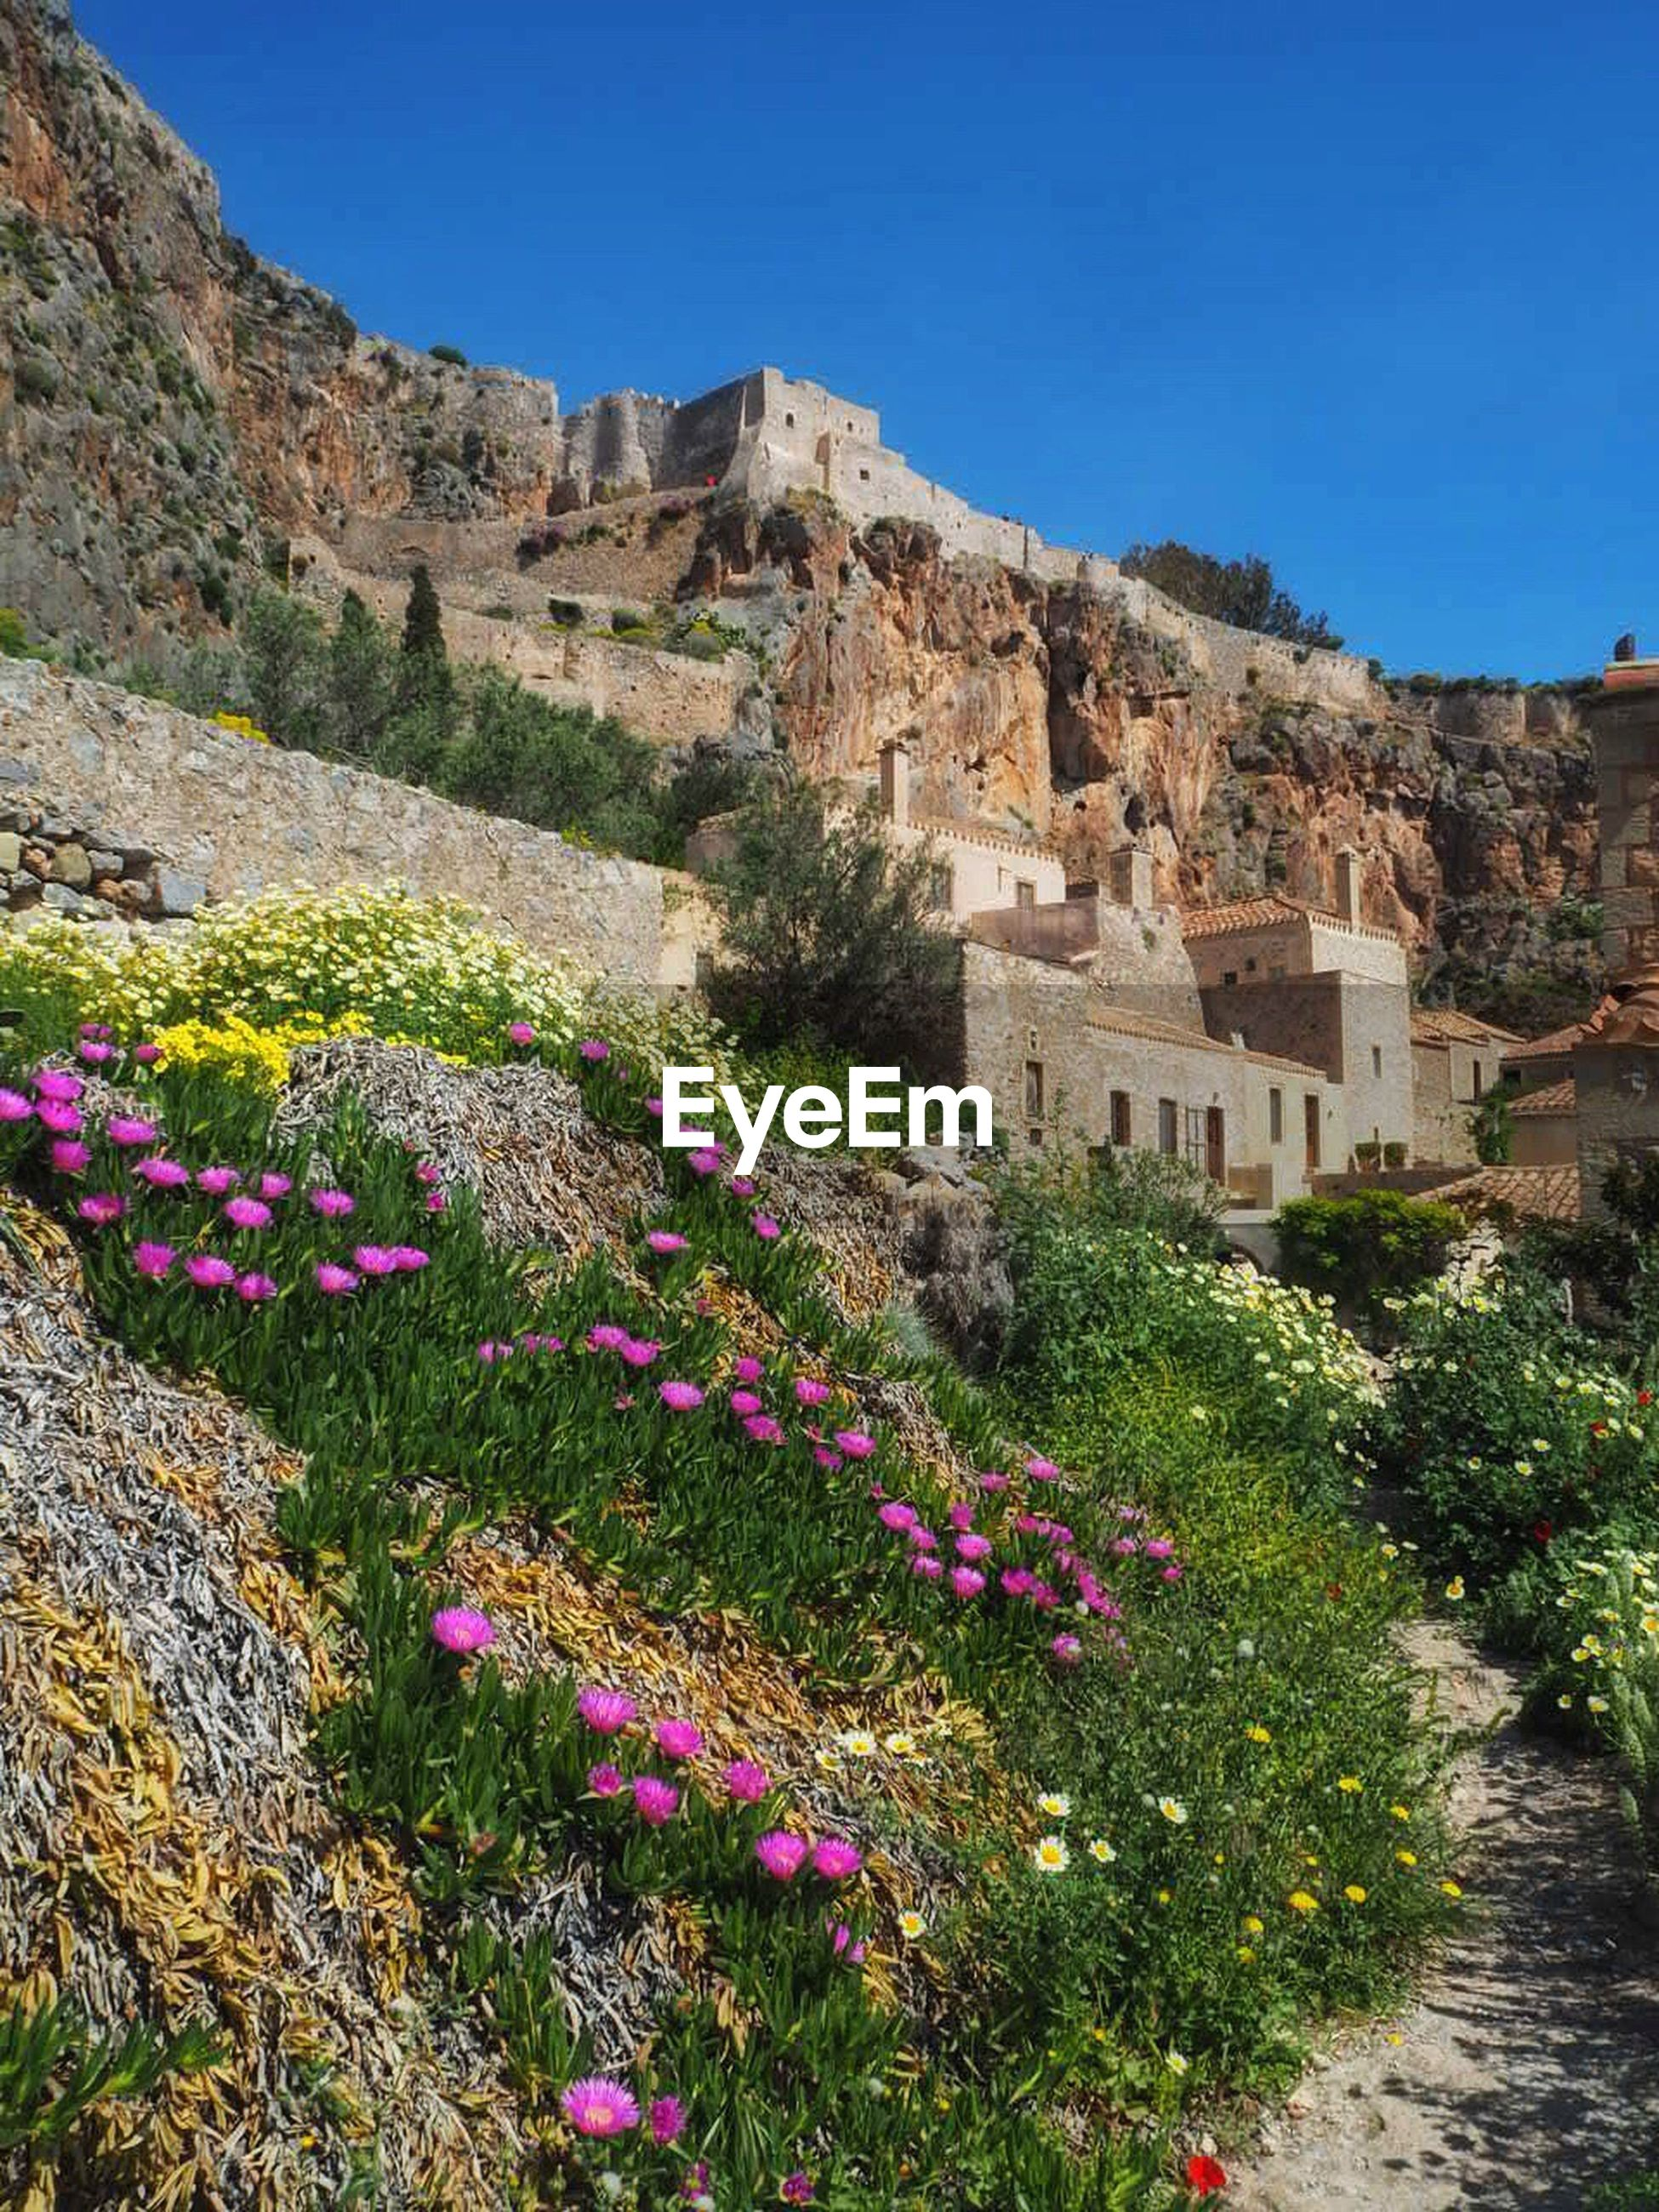 FLOWERS GROWING IN MOUNTAINS